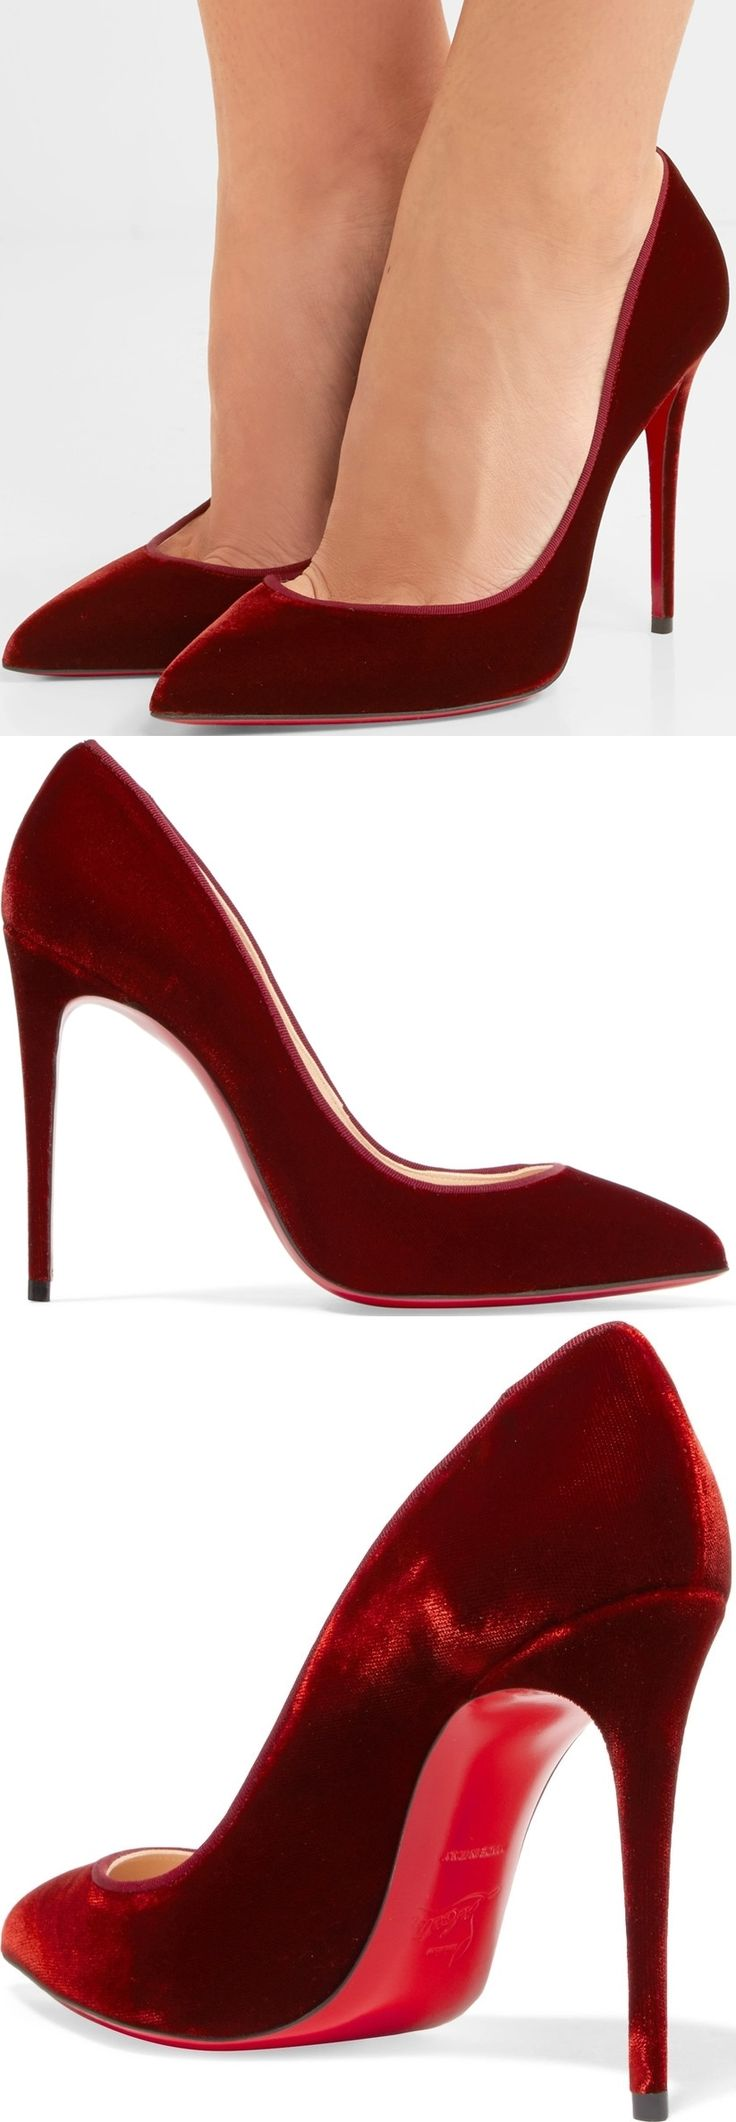 One of Christian Louboutin's most iconic styles, the 'Pigalle Follies' pumps are named after the designer's favorite Parisian quarter. This point-toe pair has been crafted in Italy from soft burgundy velvet. They're lined in leather for a smooth fit and undoubtedly finished with the label's signature scarlet sole.